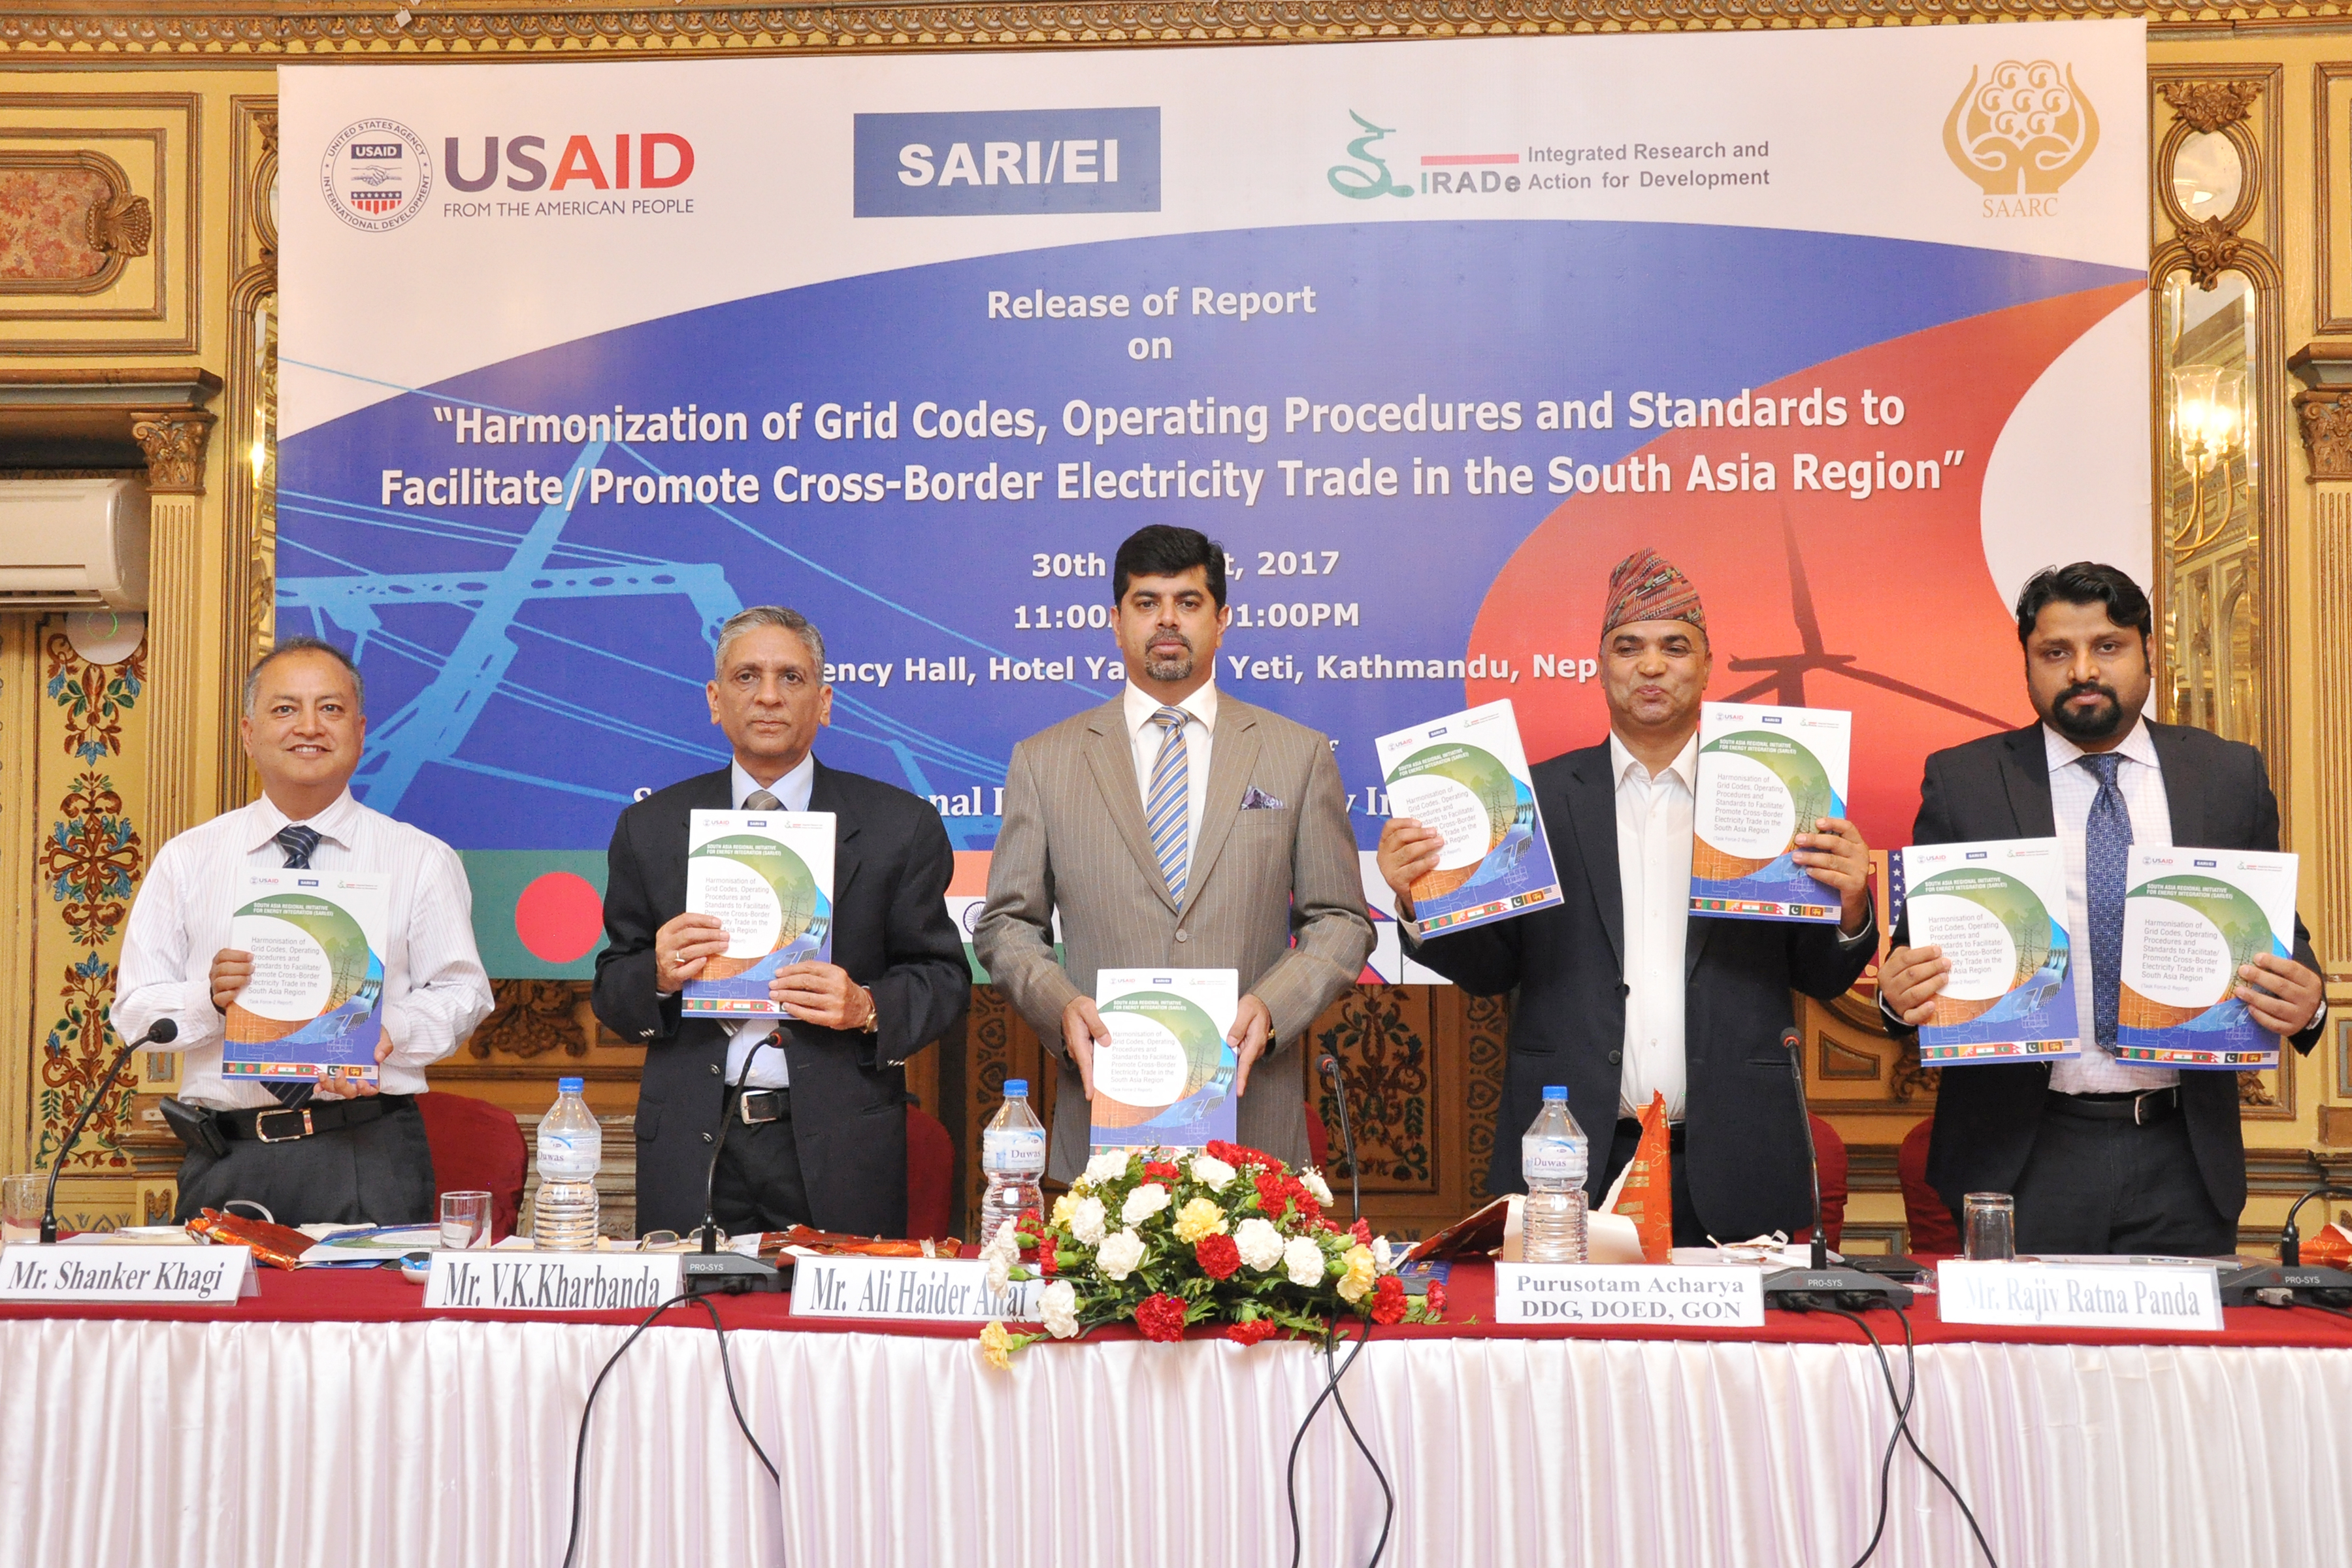 """Release of Report On """"Harmonization of Grid Codes, Operating Procedures and Standards to facilitate/promote Cross-Border Electricity Trade in the SA Region"""" 30th August, 2017 ,Hotel Yak & Yeti, Kathmandu, Nepal"""